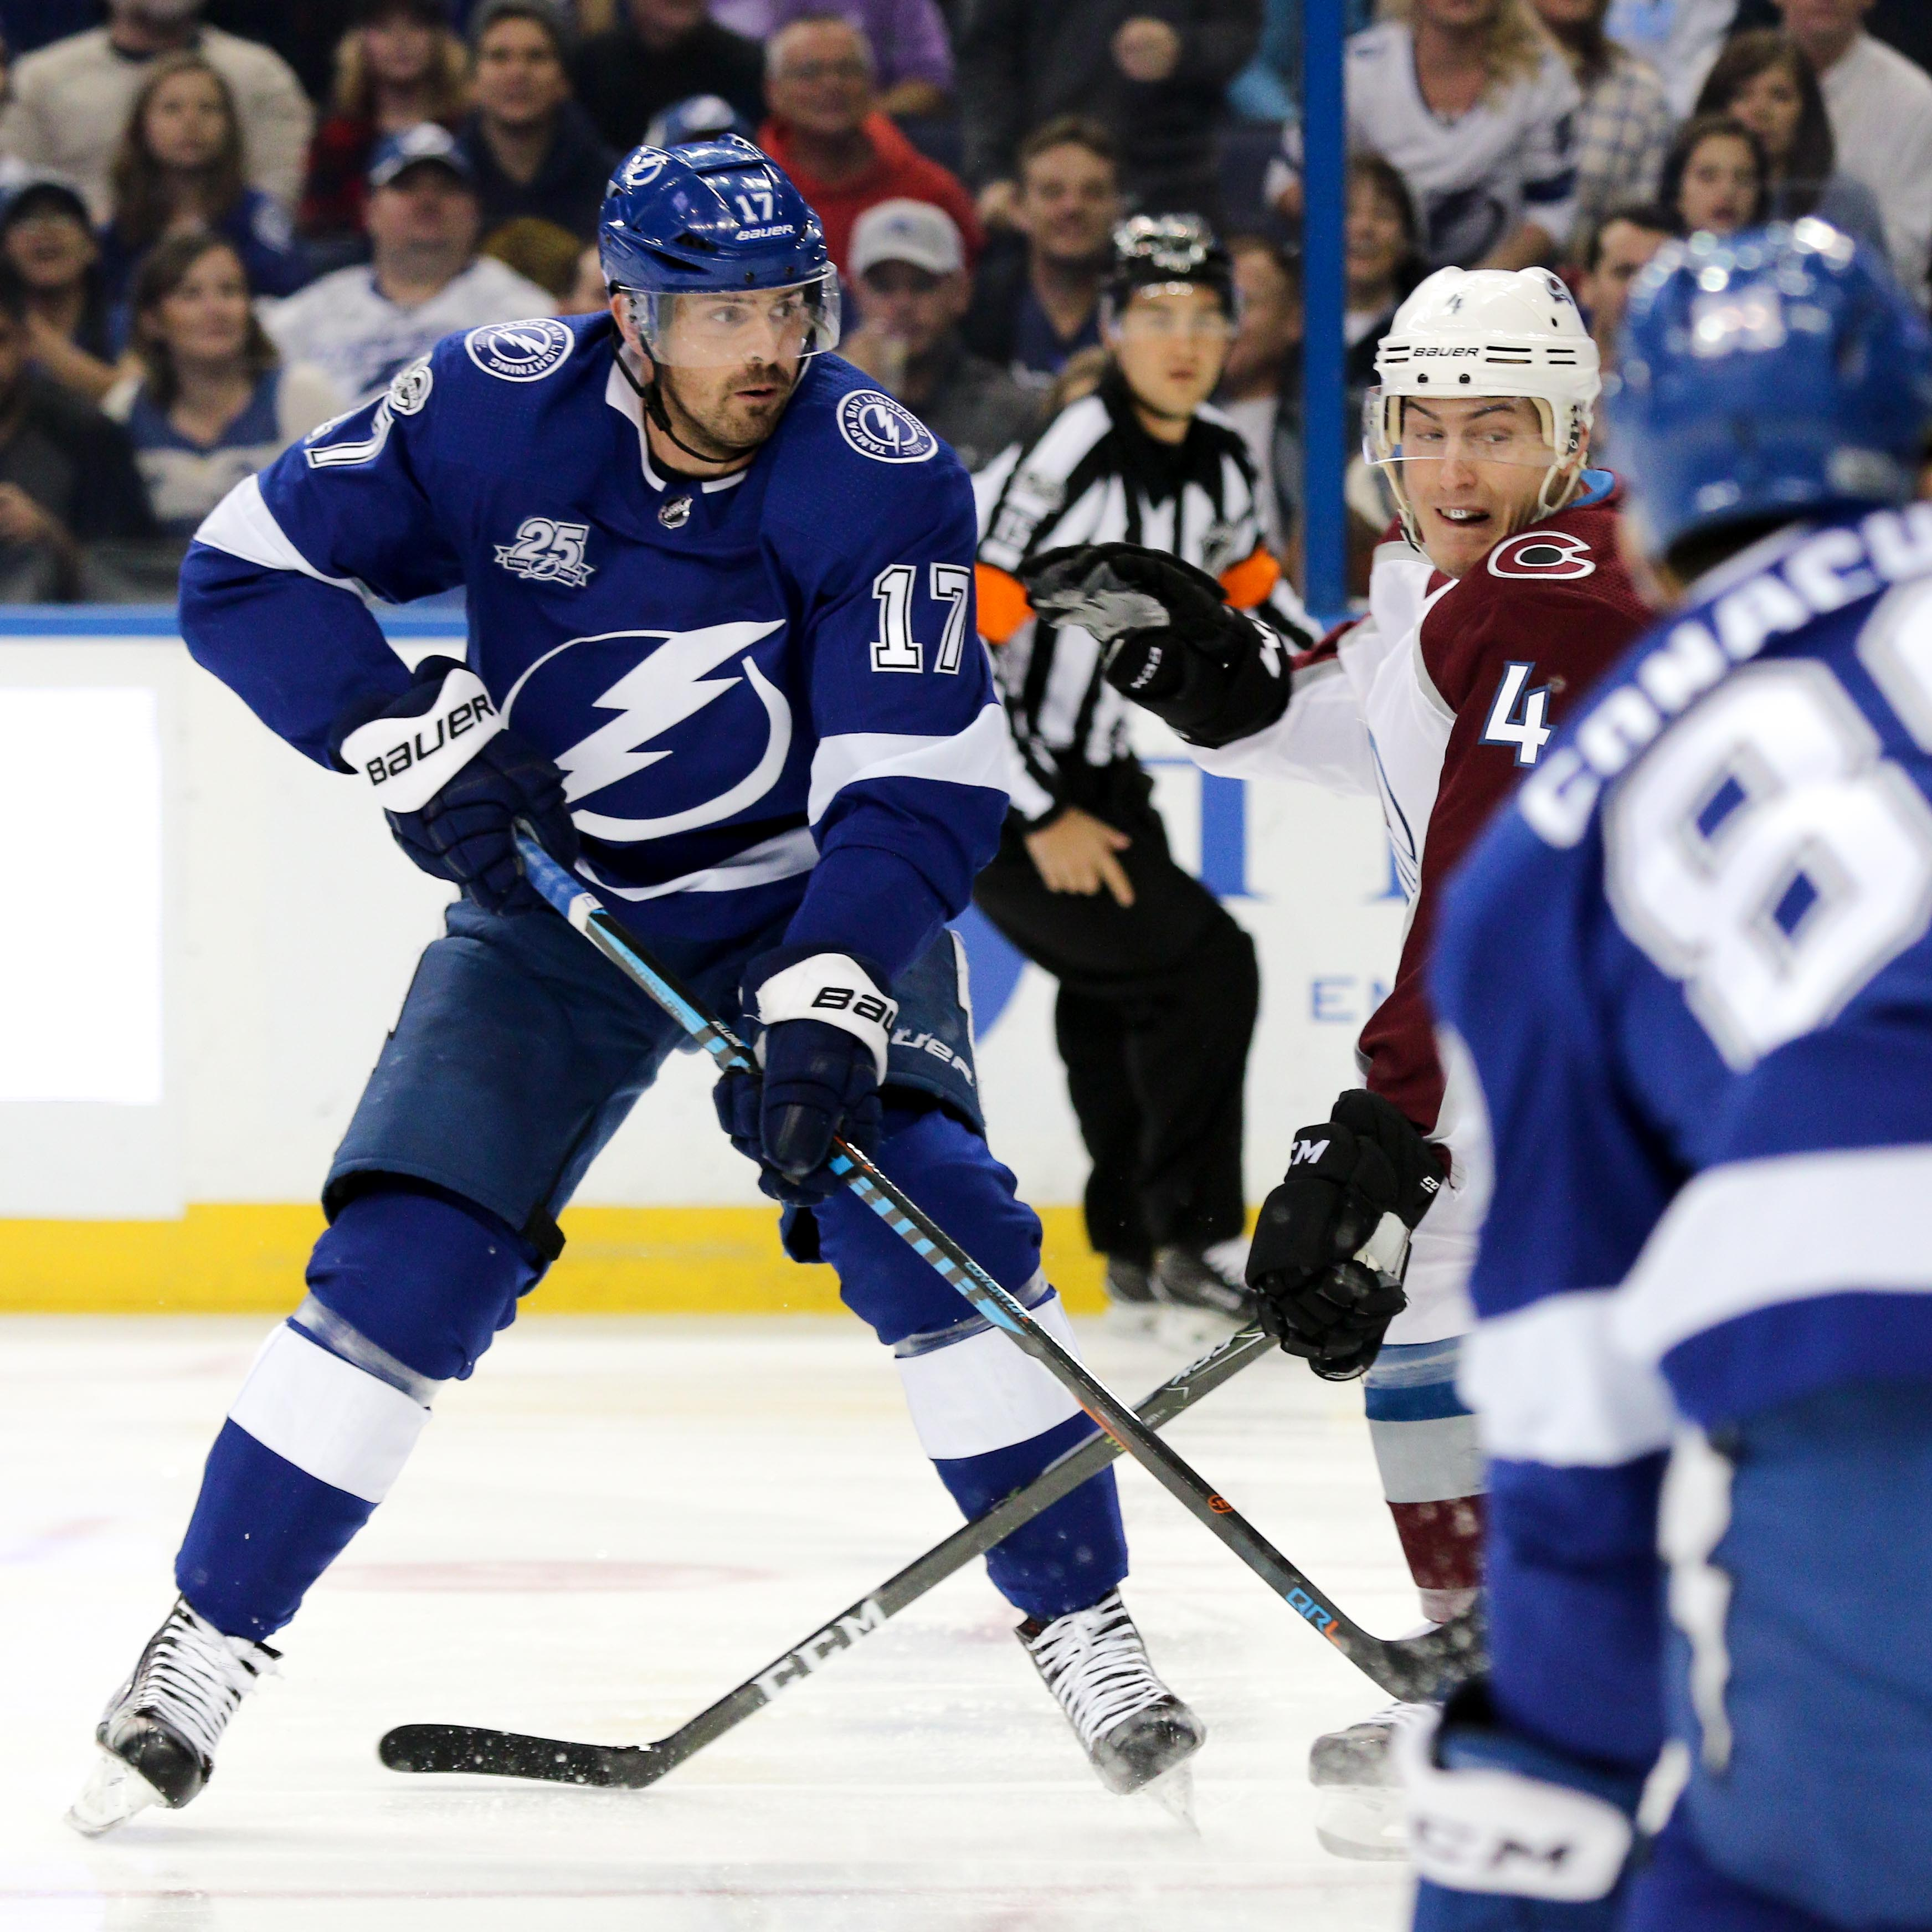 Killorn battles for position with Barrie./ANDREW J. KRAMER